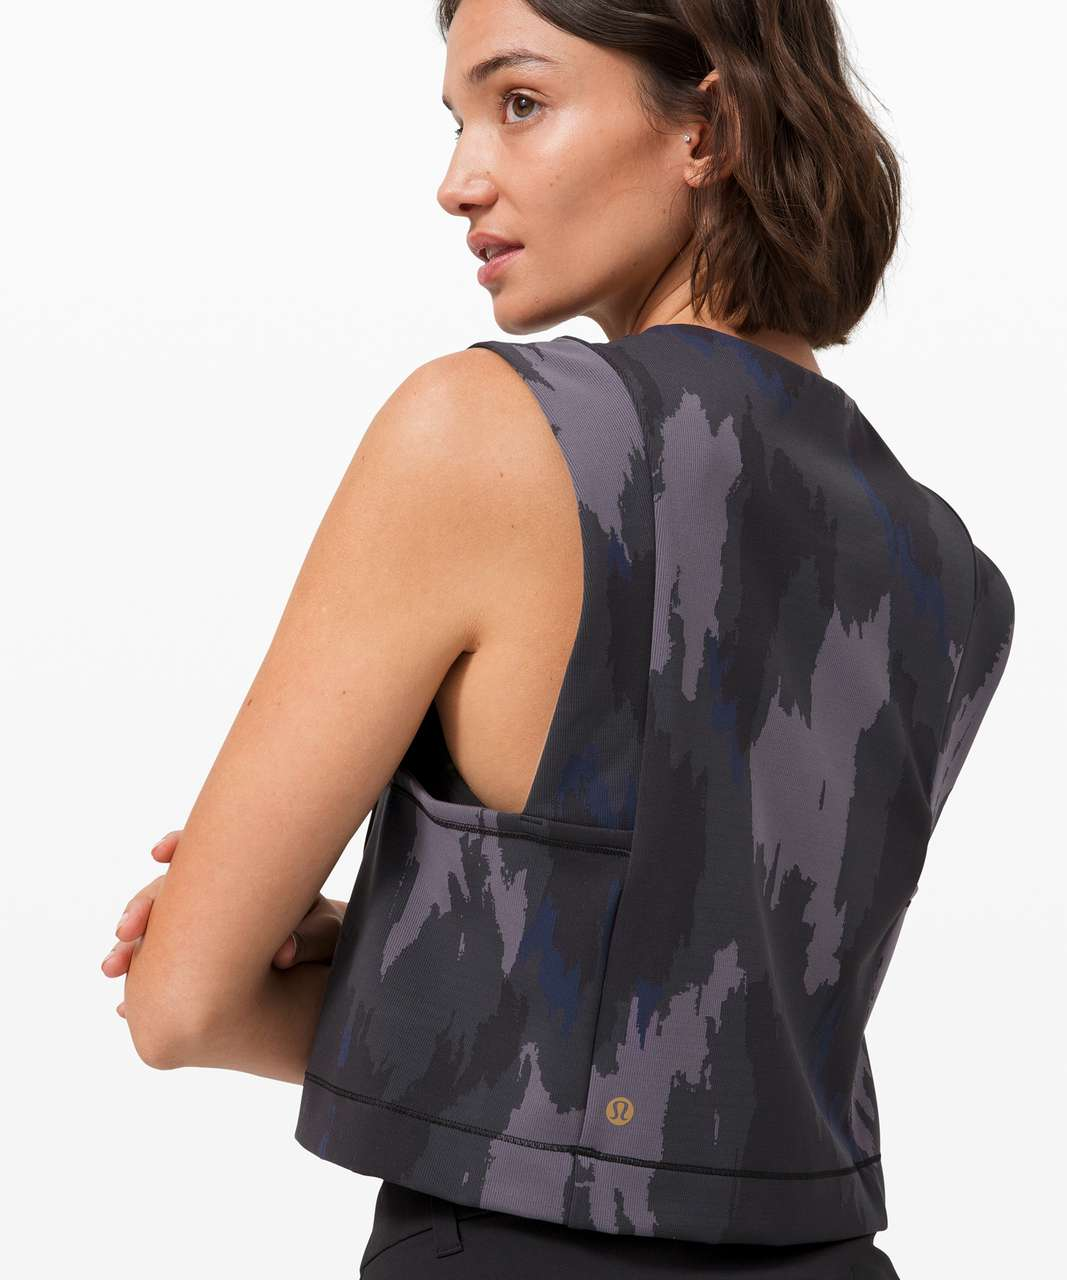 Lululemon Take The Moment Cropped Tank *lululemon x Robert Geller - Distressed Camo Jacquard Super Dark Inkwell